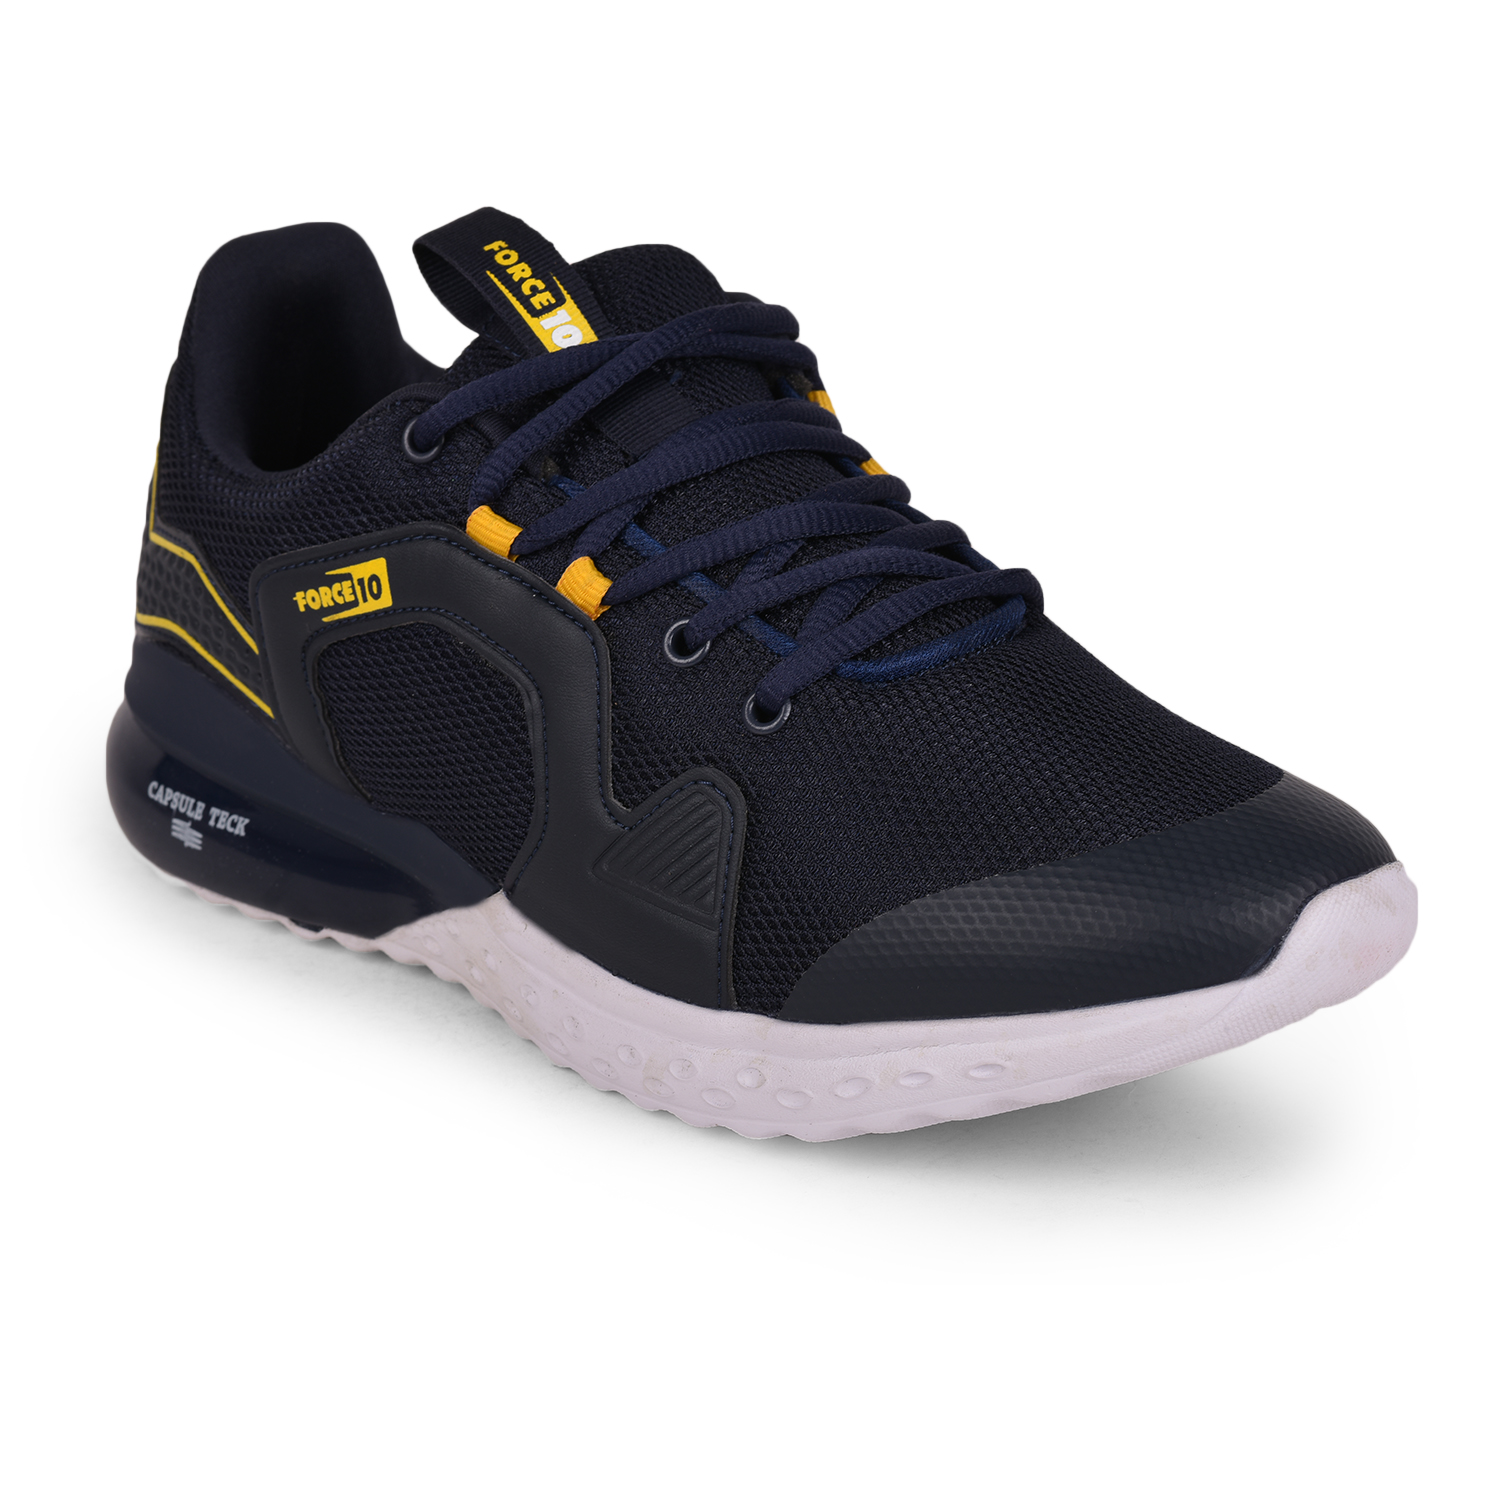 Liberty   Liberty Force 10 Blue Sports Running Shoes TOBY_Blue For - Men